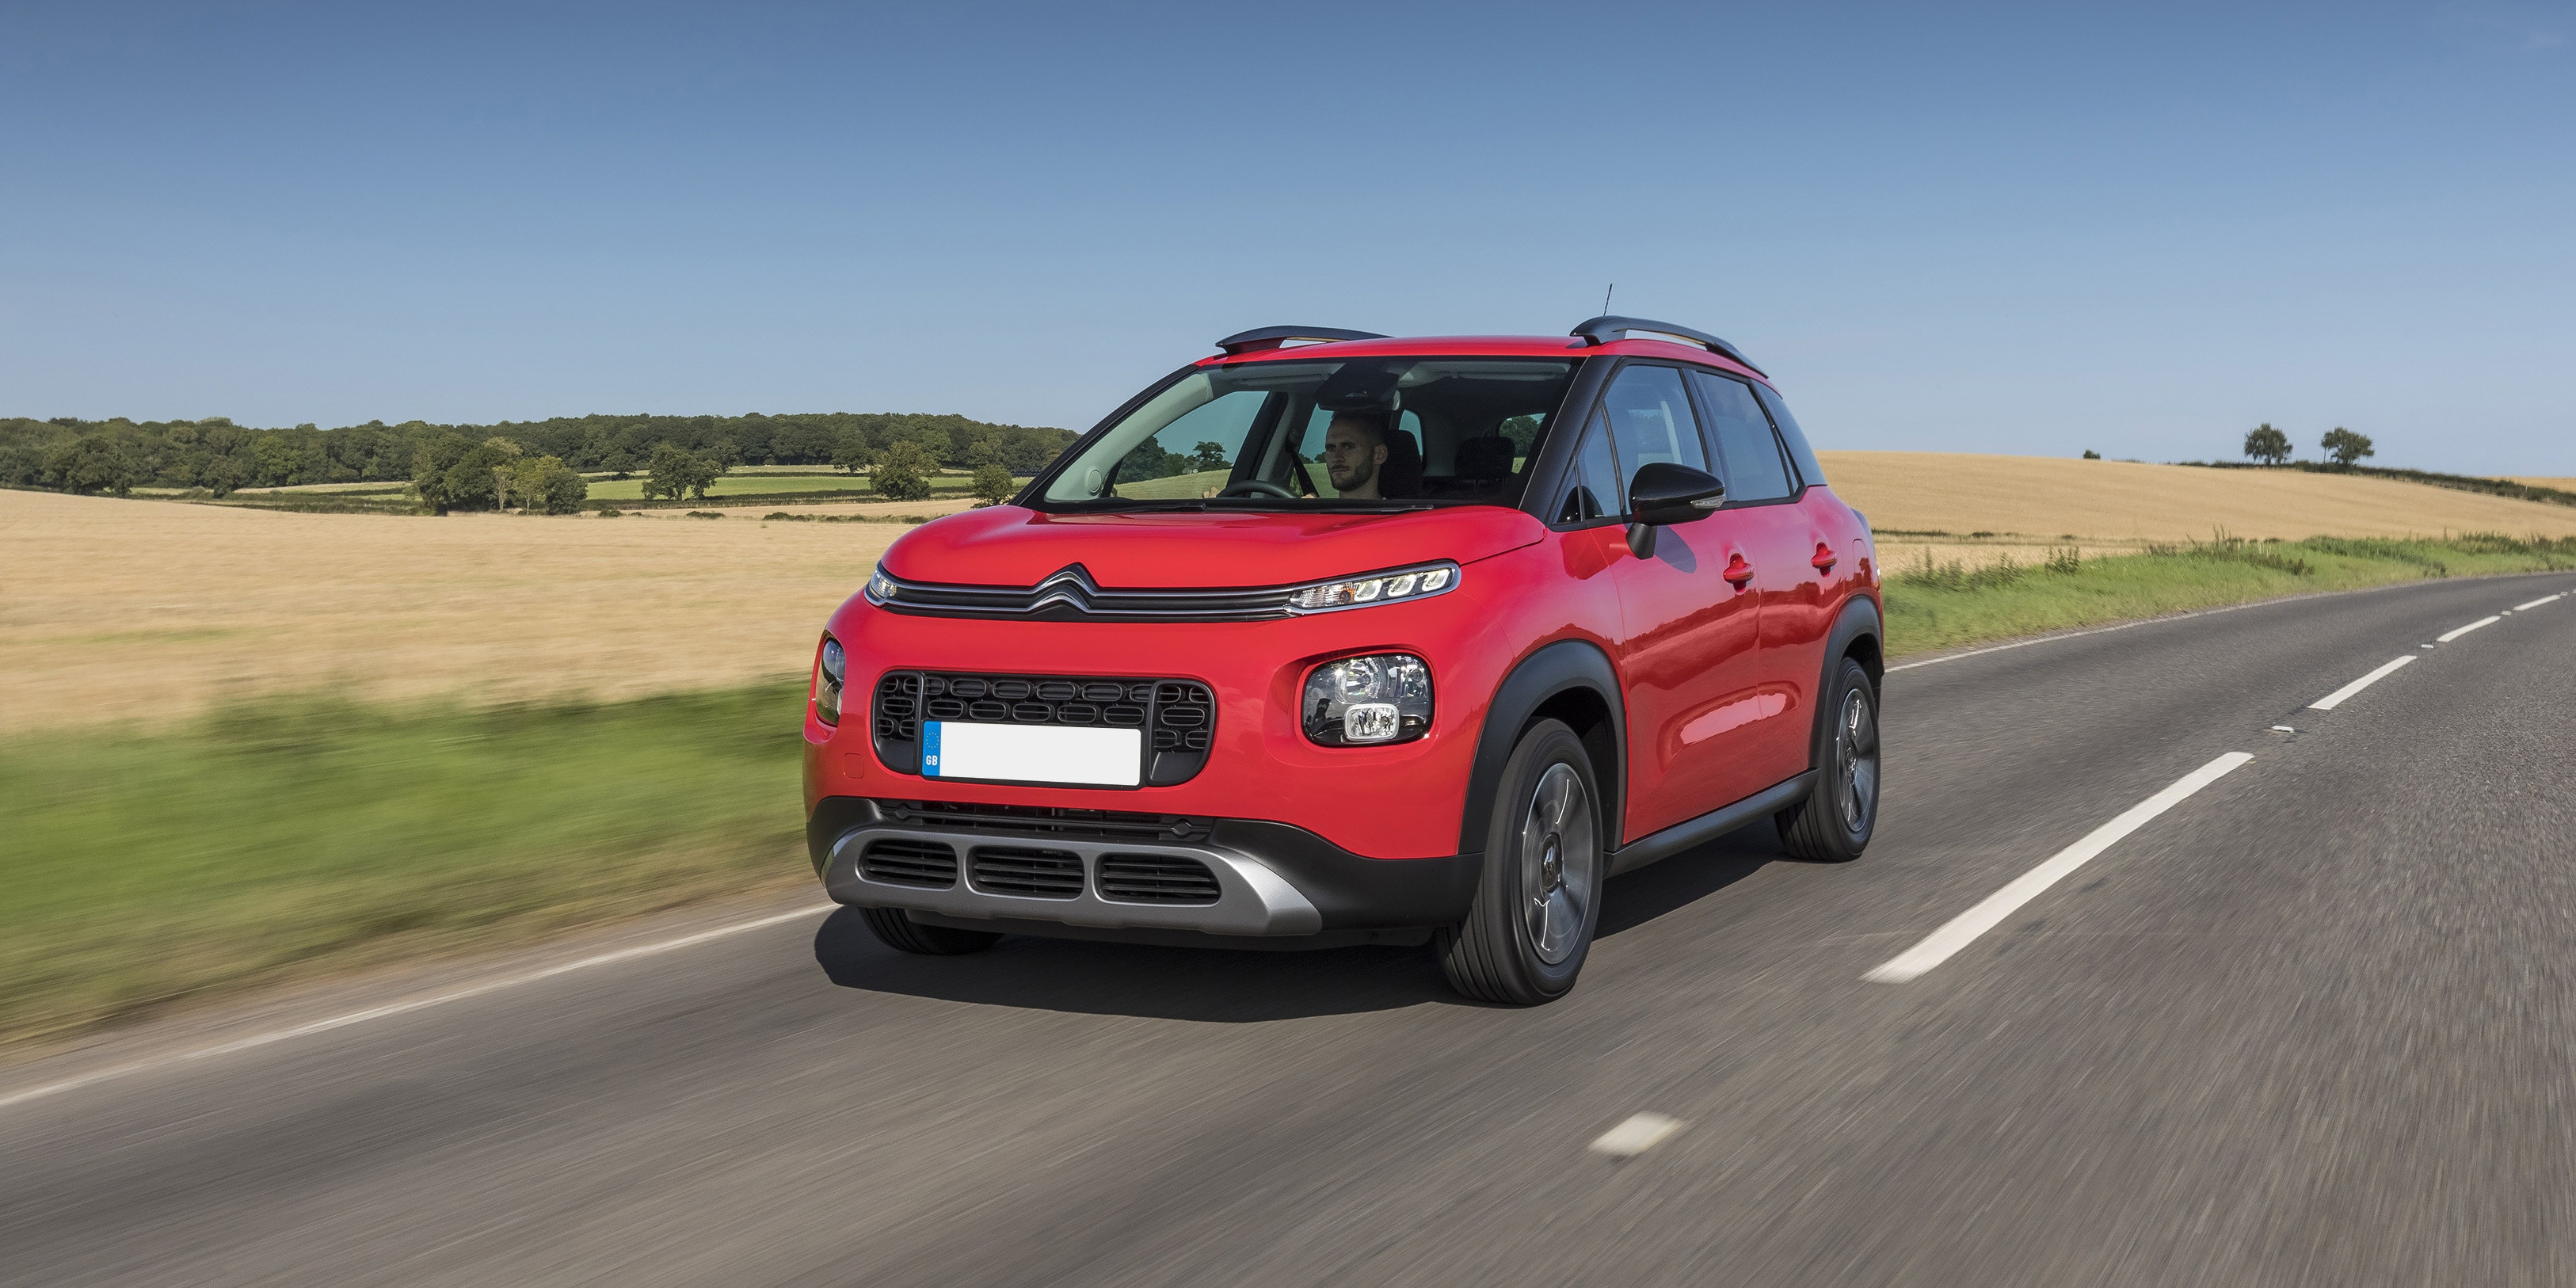 For a car of this type, the Citroen A3 Aircross is comfortable